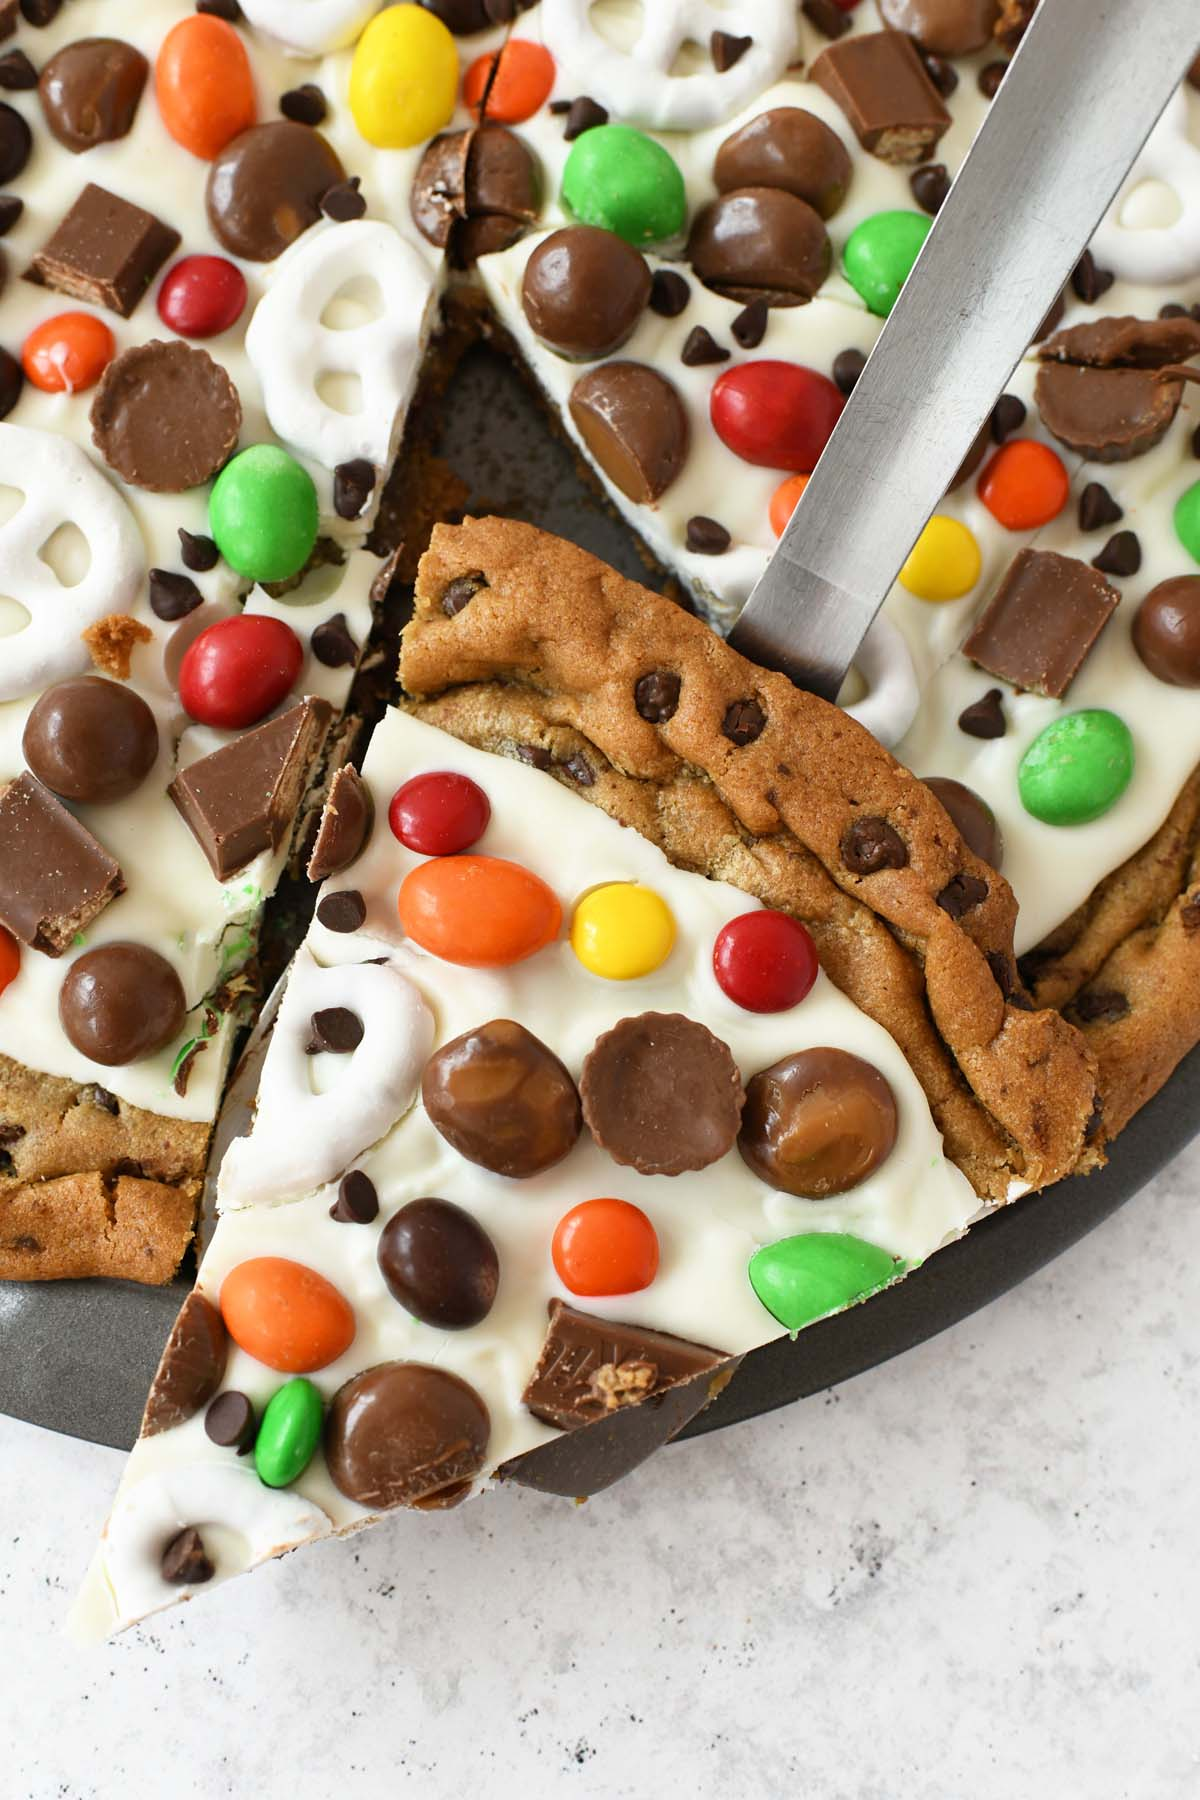 Slice of Candy Chocolate Chip Cookie pizza on a silver spatula.